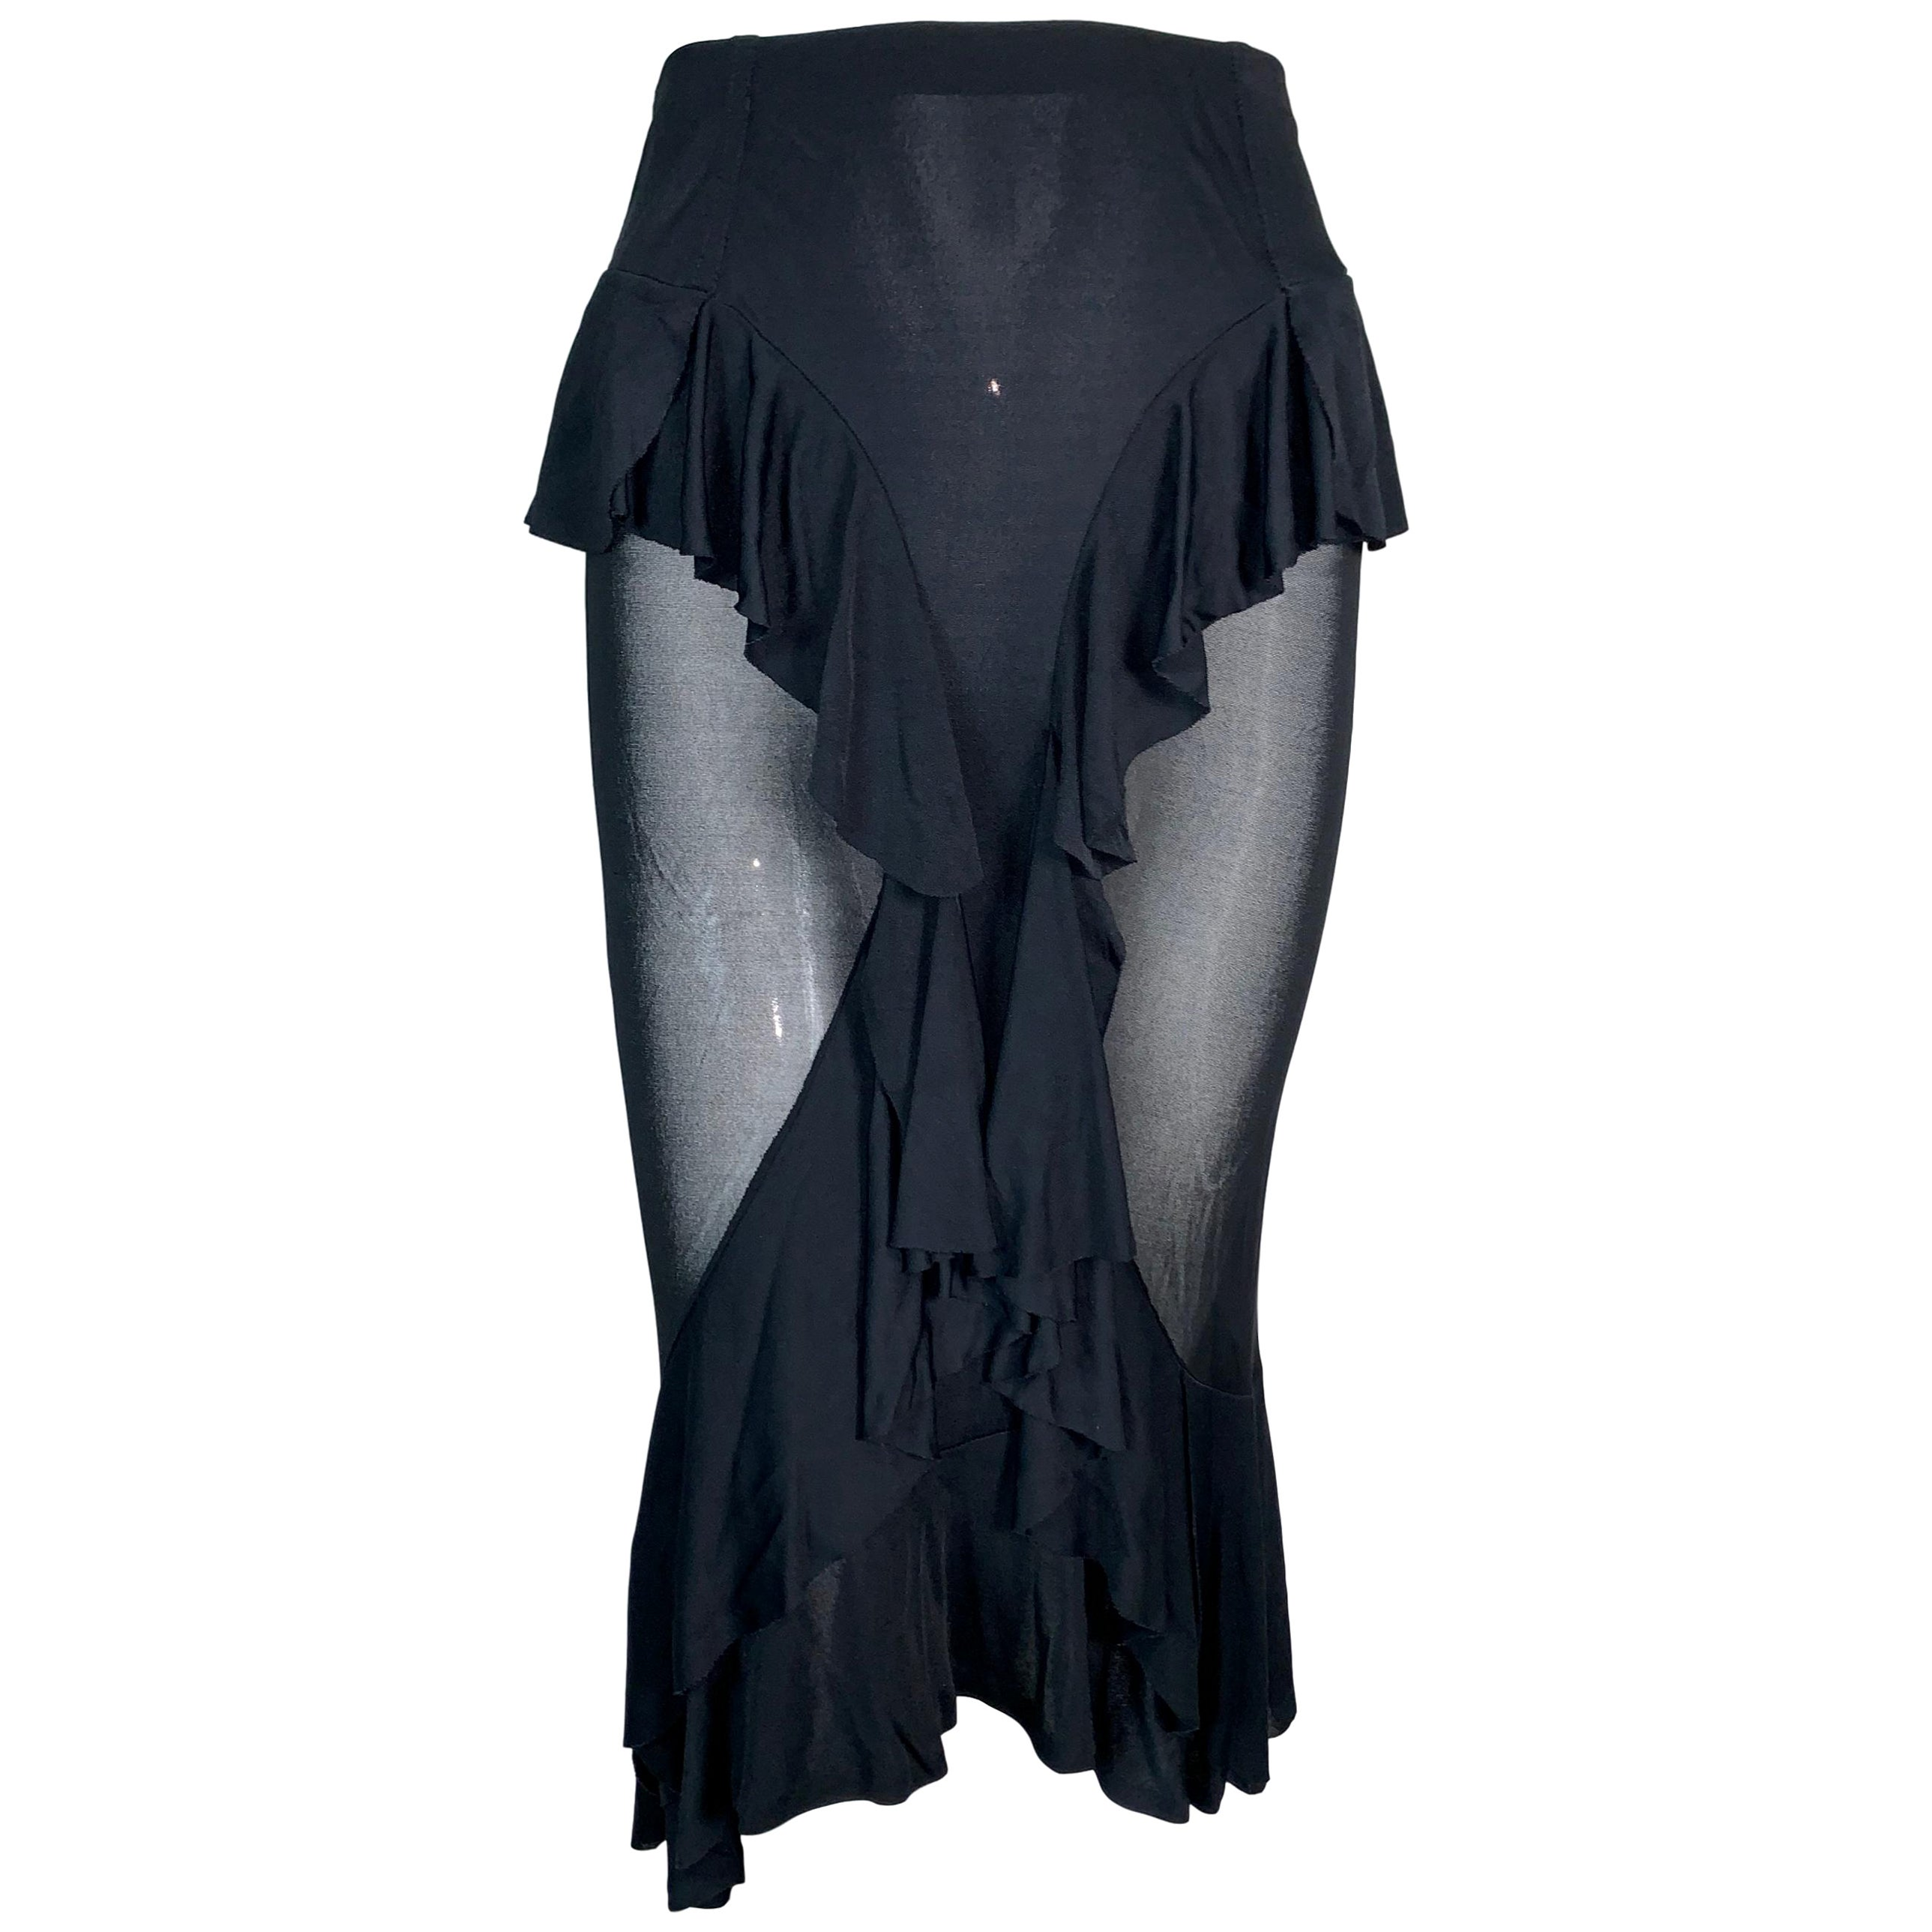 F/W 2003 Yves Saint Laurent by Tom Ford Sheer Black Ruffles Skirt